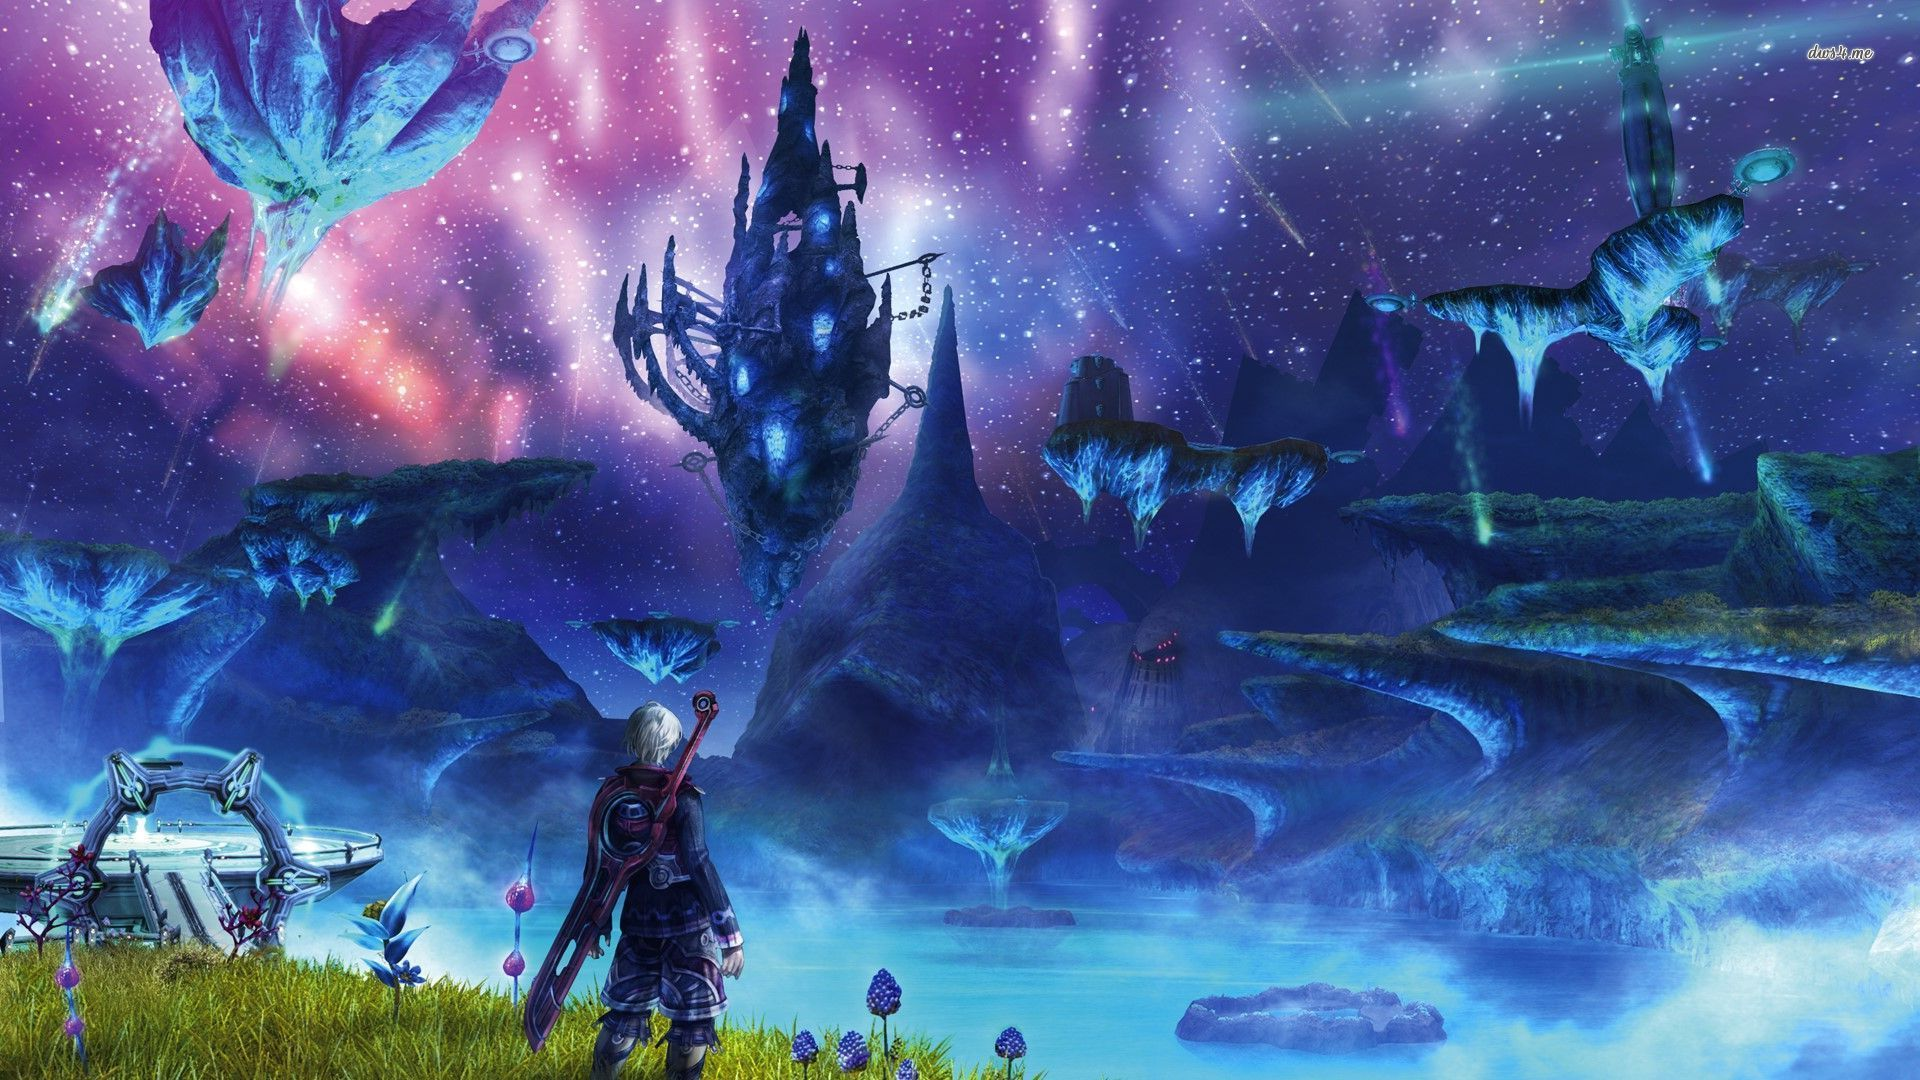 Xenoblade Chronicles Hd Wallpaper Xenoblade Chronicles